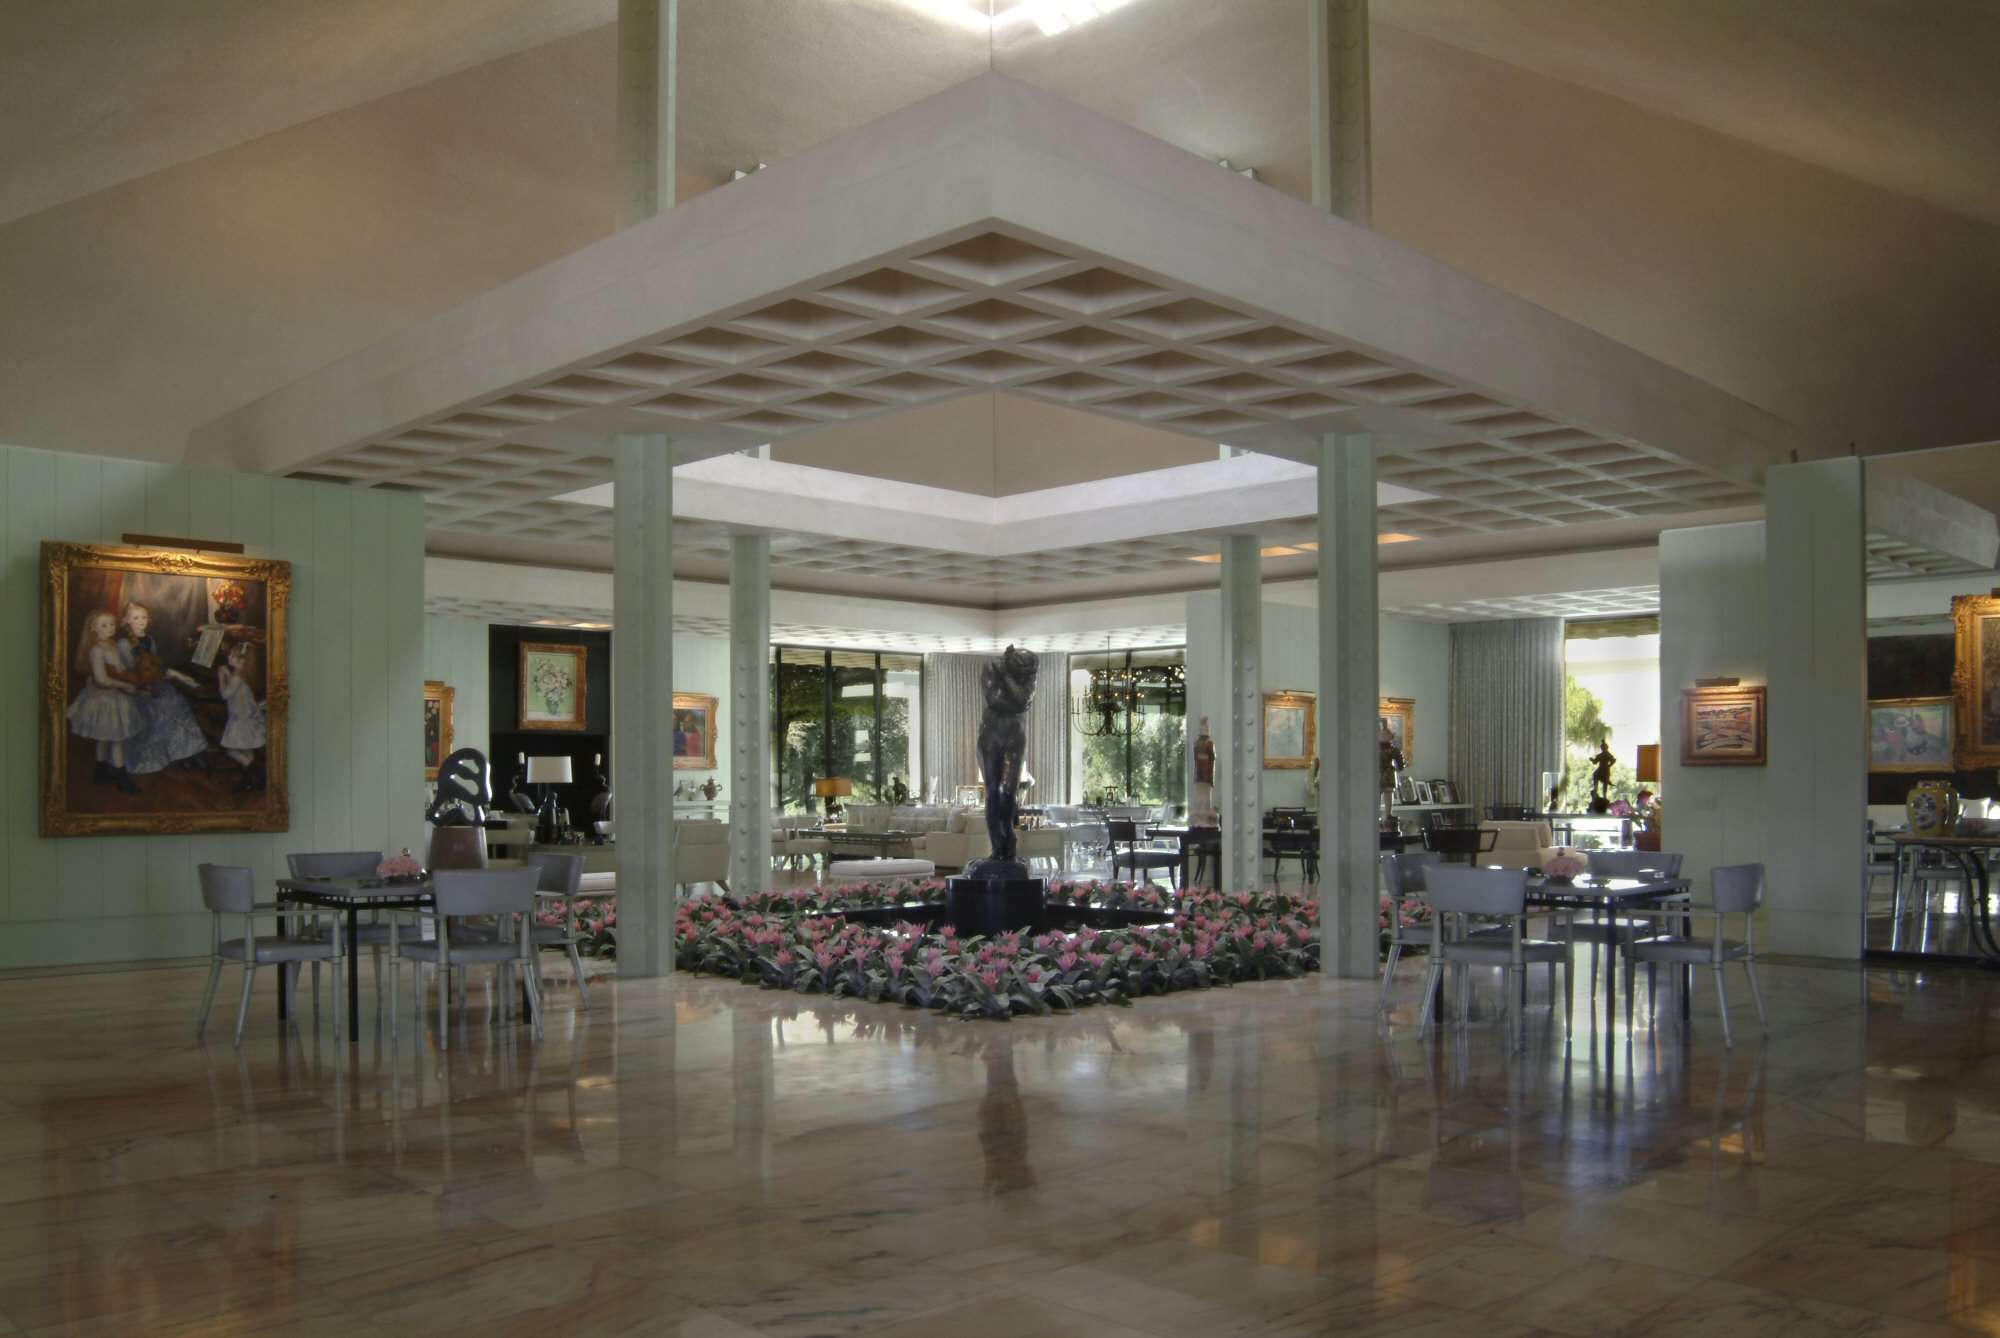 floor and decor mesquite houses flooring picture ideas.htm sunnylands  1966  home of the rich and famous  sunnylands  1966  home of the rich and